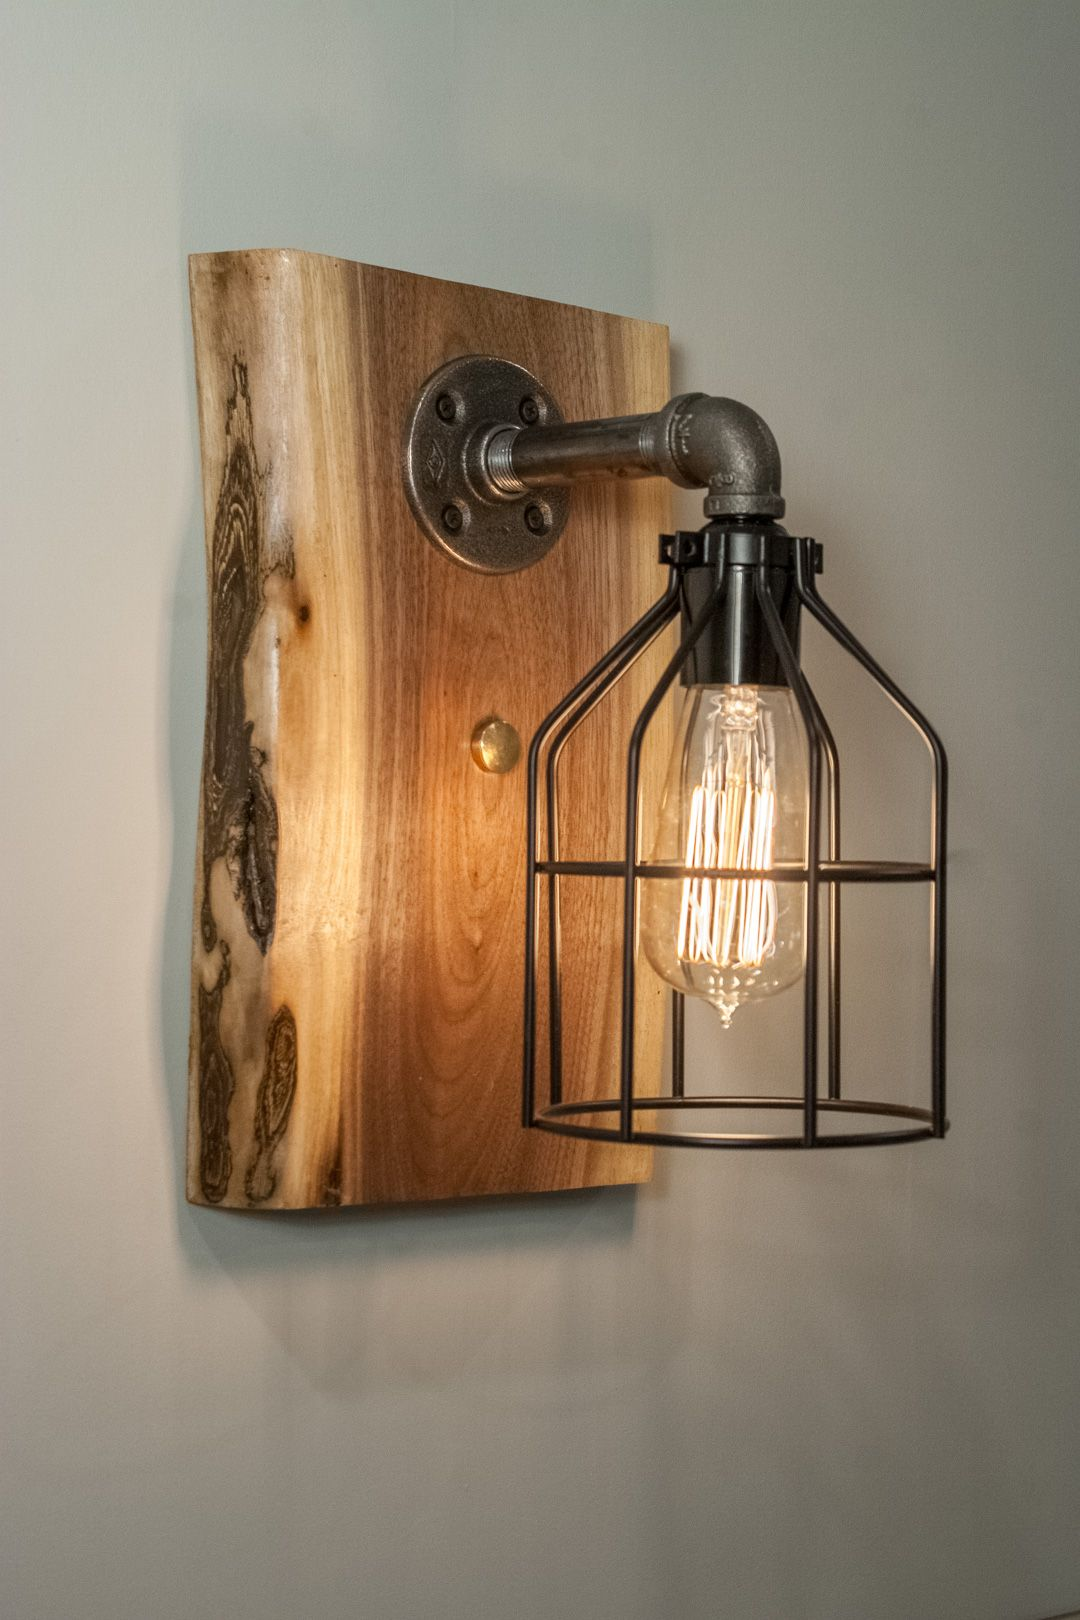 Edison Wall Sconce Steampunk Light Fixture Featuring